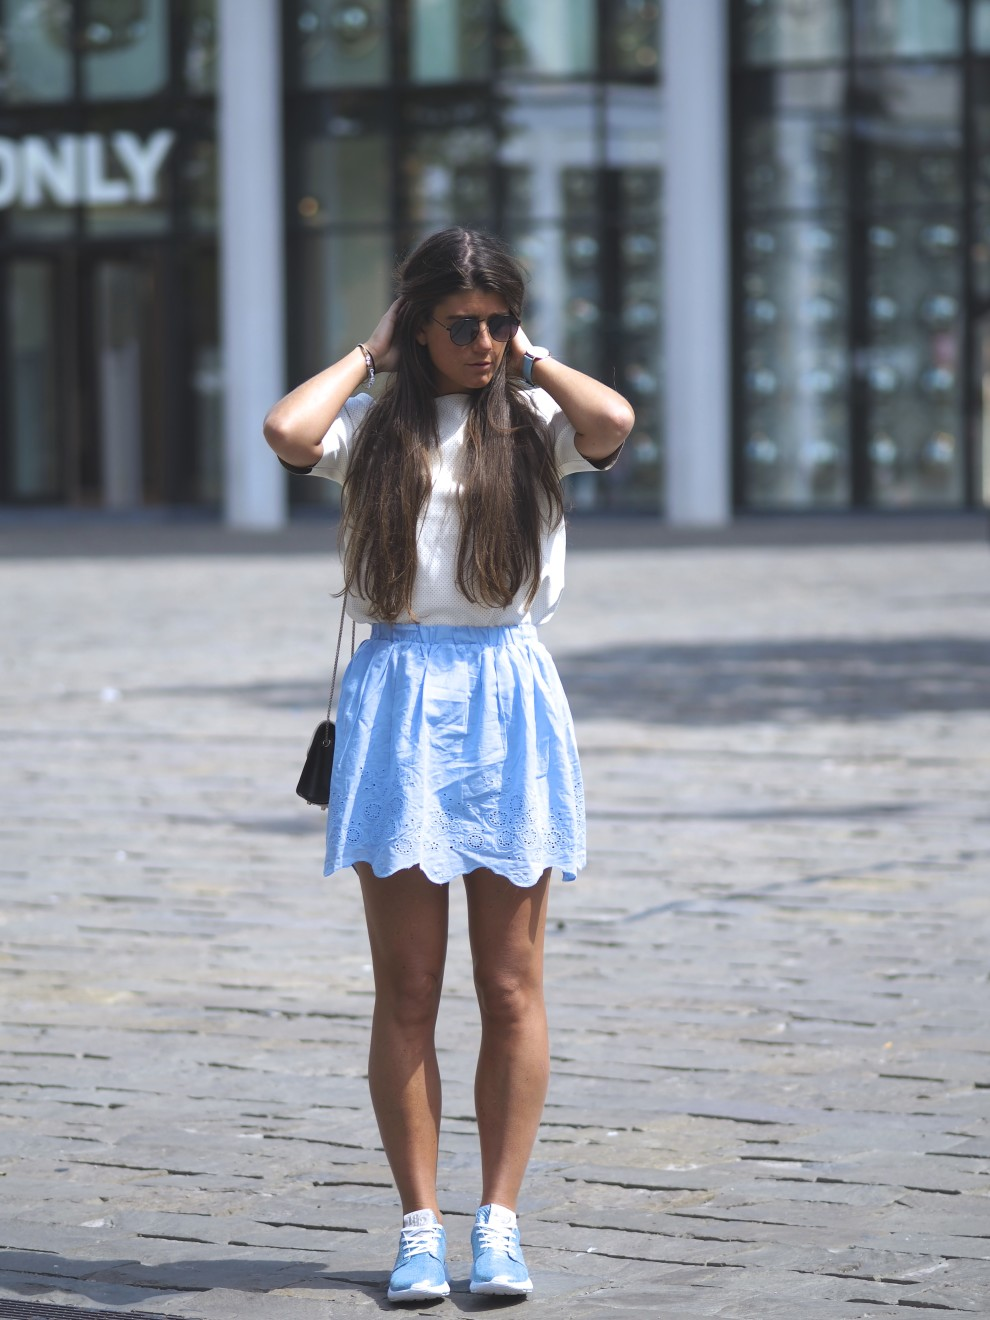 HOW TO WEAR: EST1842 SNEAKERS DE KAAIJ NIJMEGEN FESTIVAL OOTD FASHIONBLOGGER